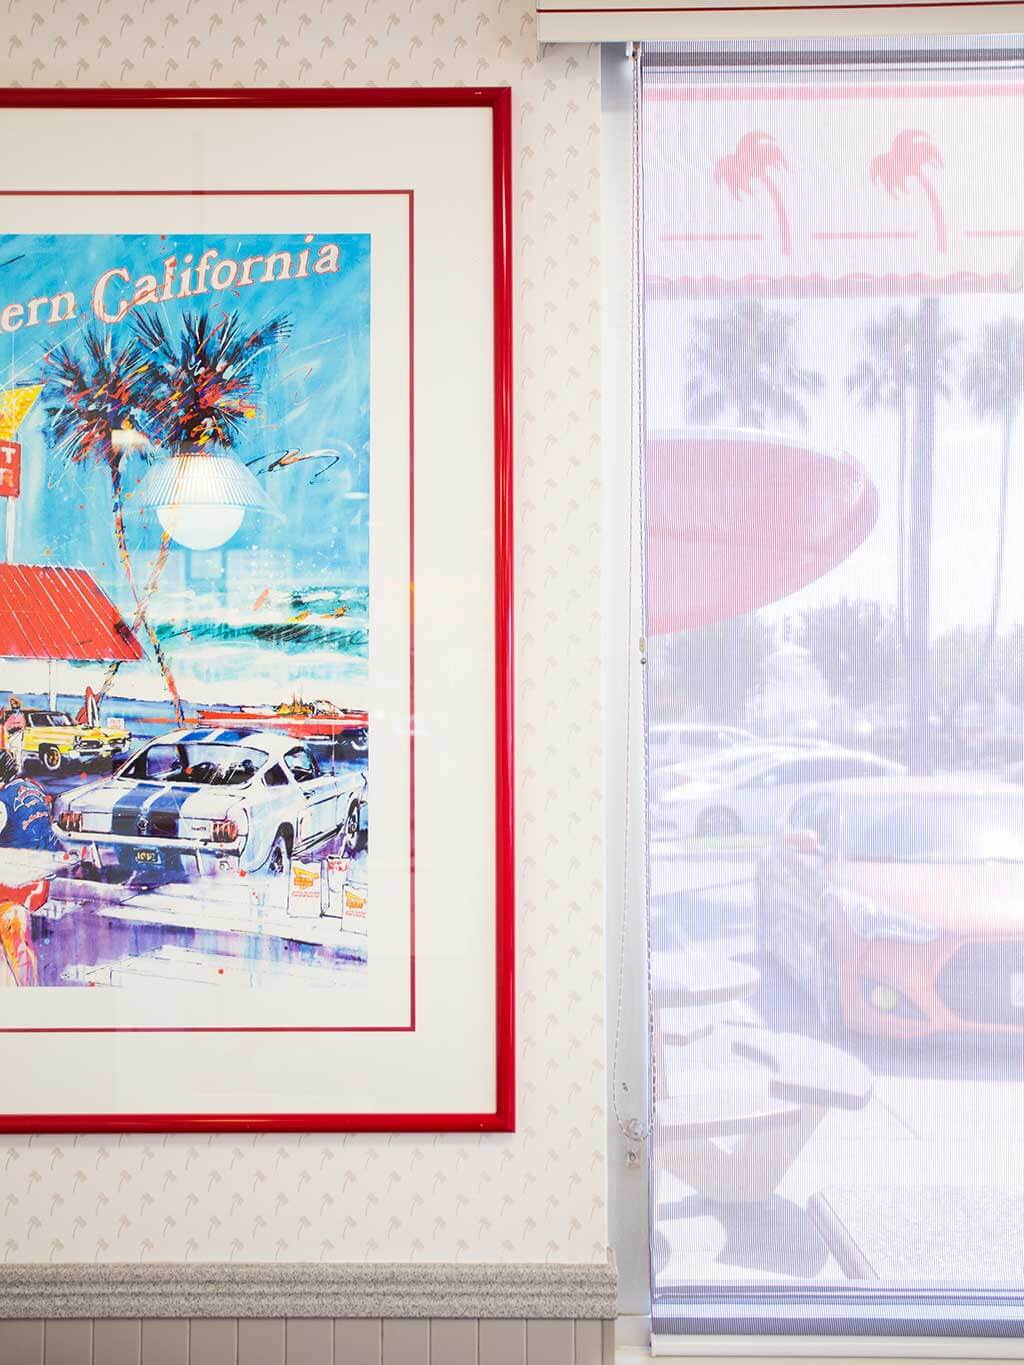 drive-swim-fly-in-n-out-burger-gilroy-california-cheeseburgers-fast-food-west-coast-original-vintage-art